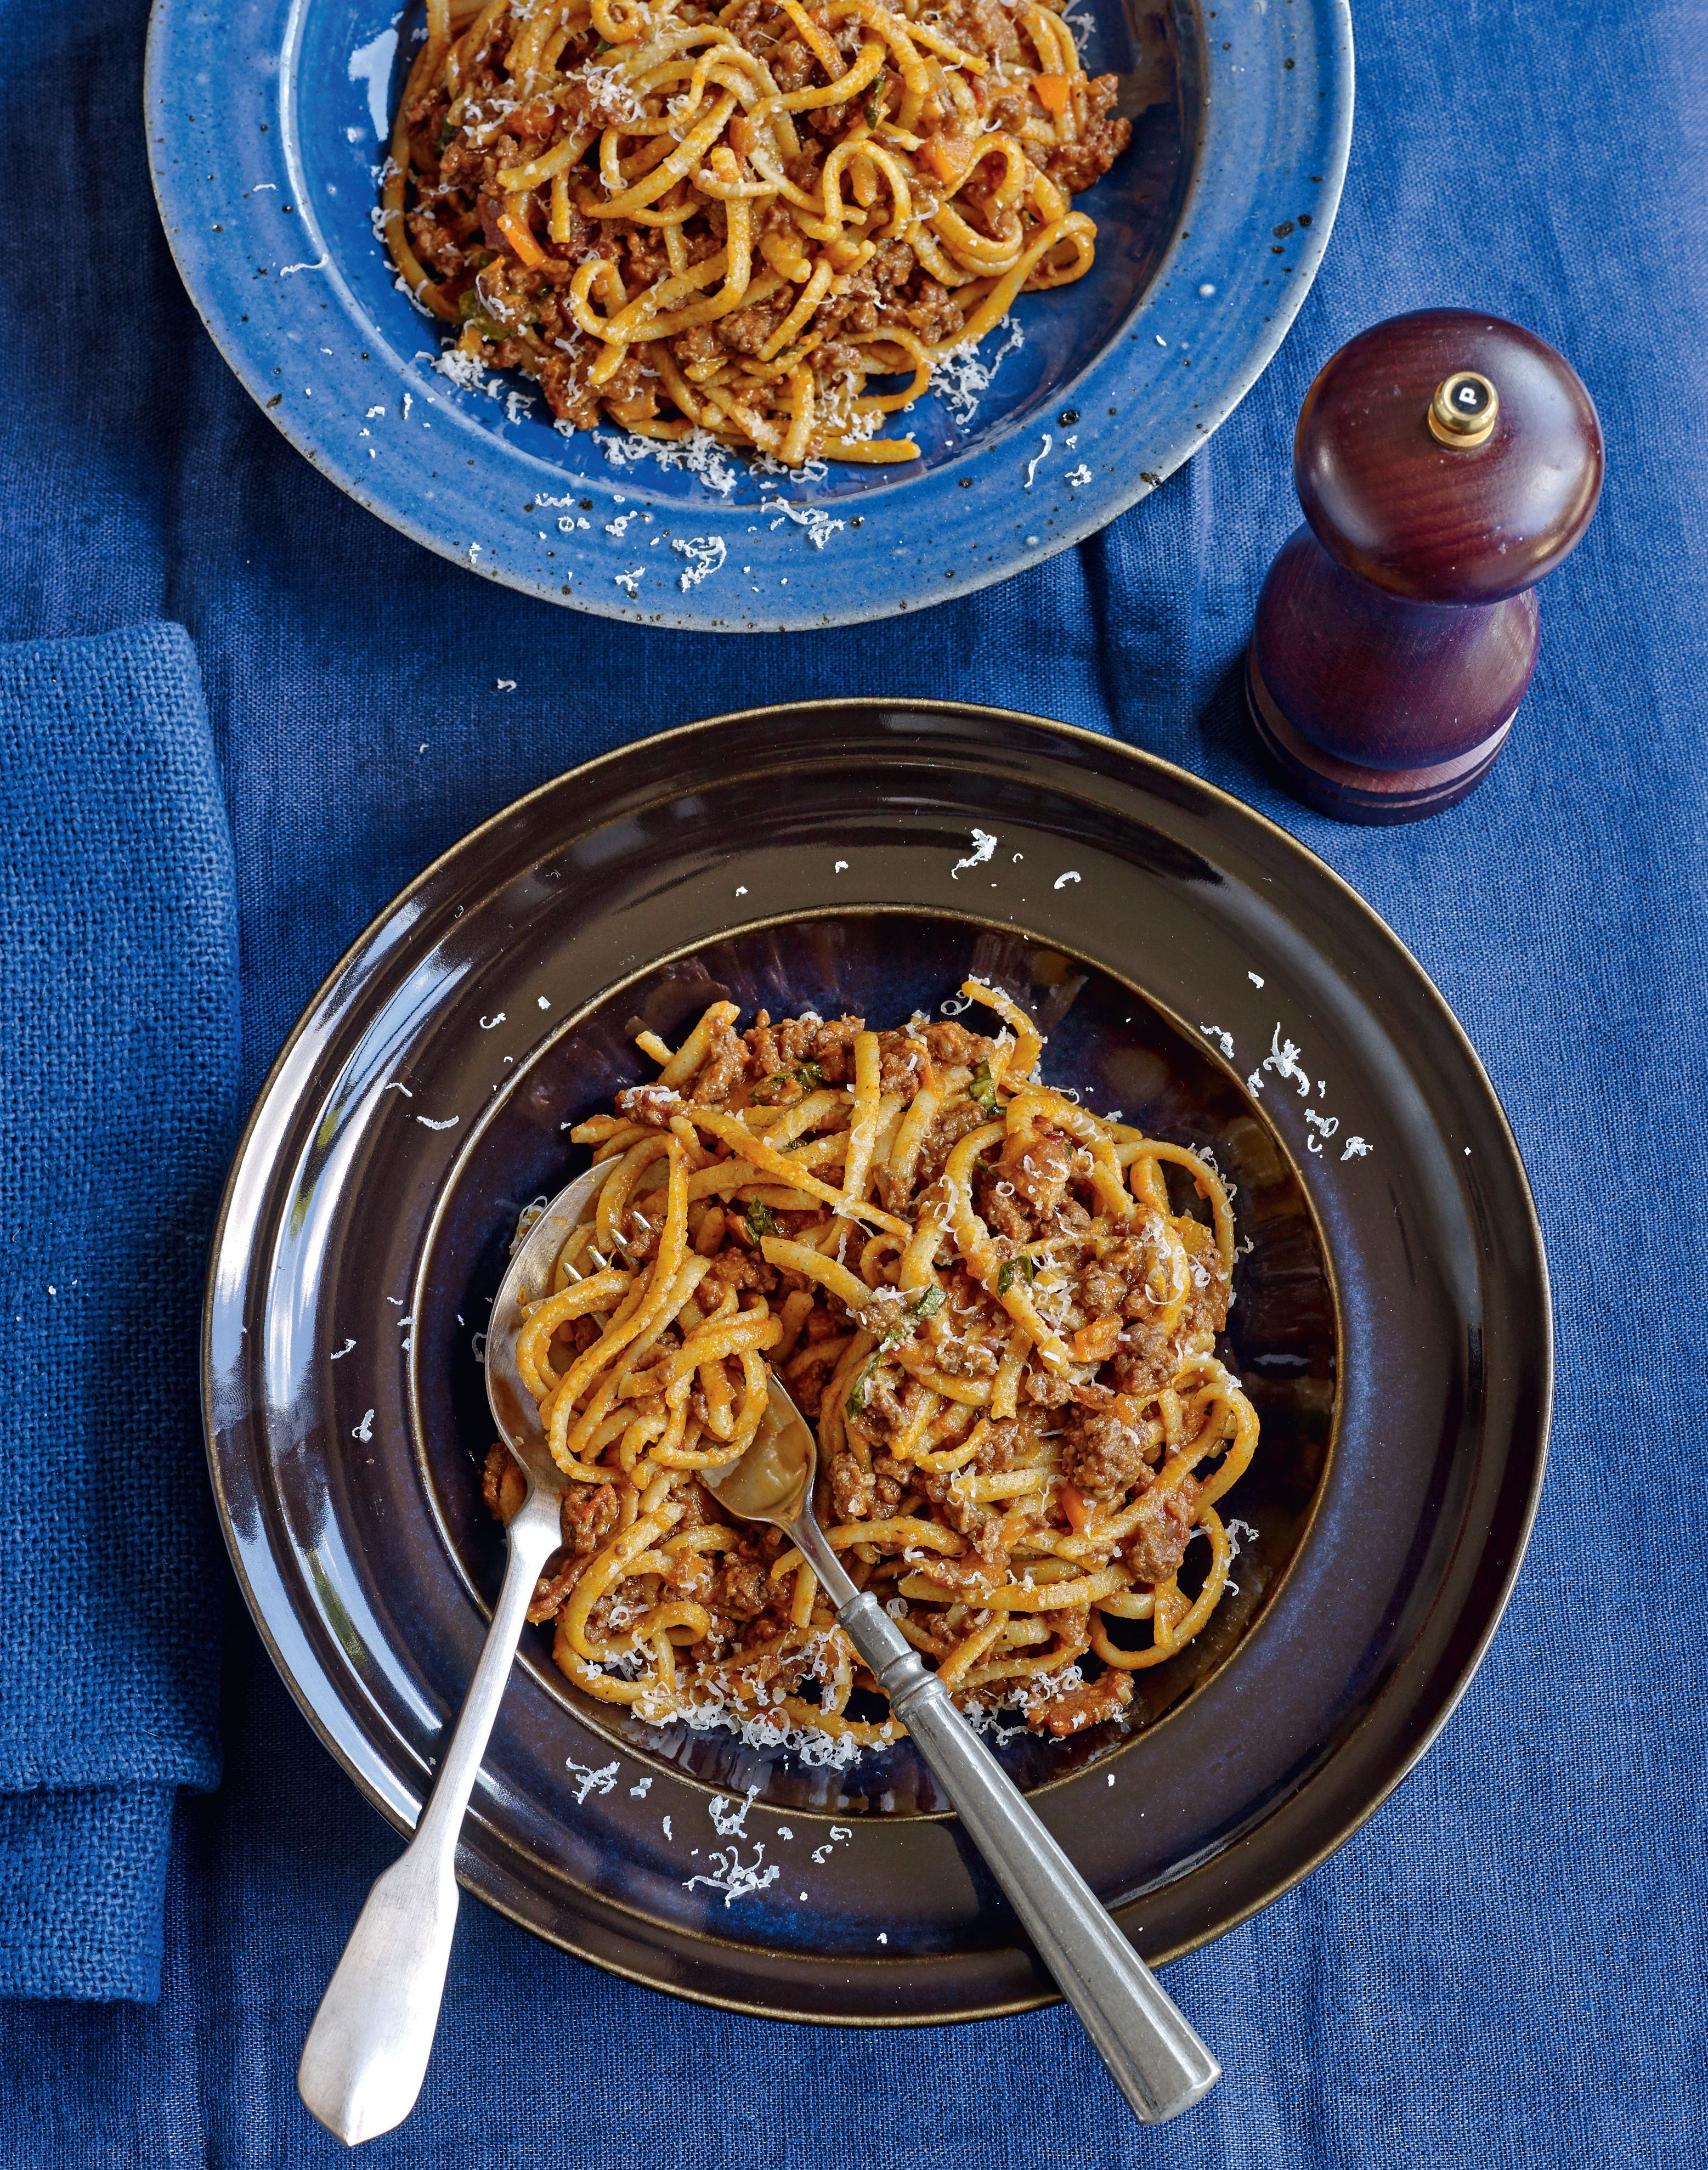 Linguine with beef ragu